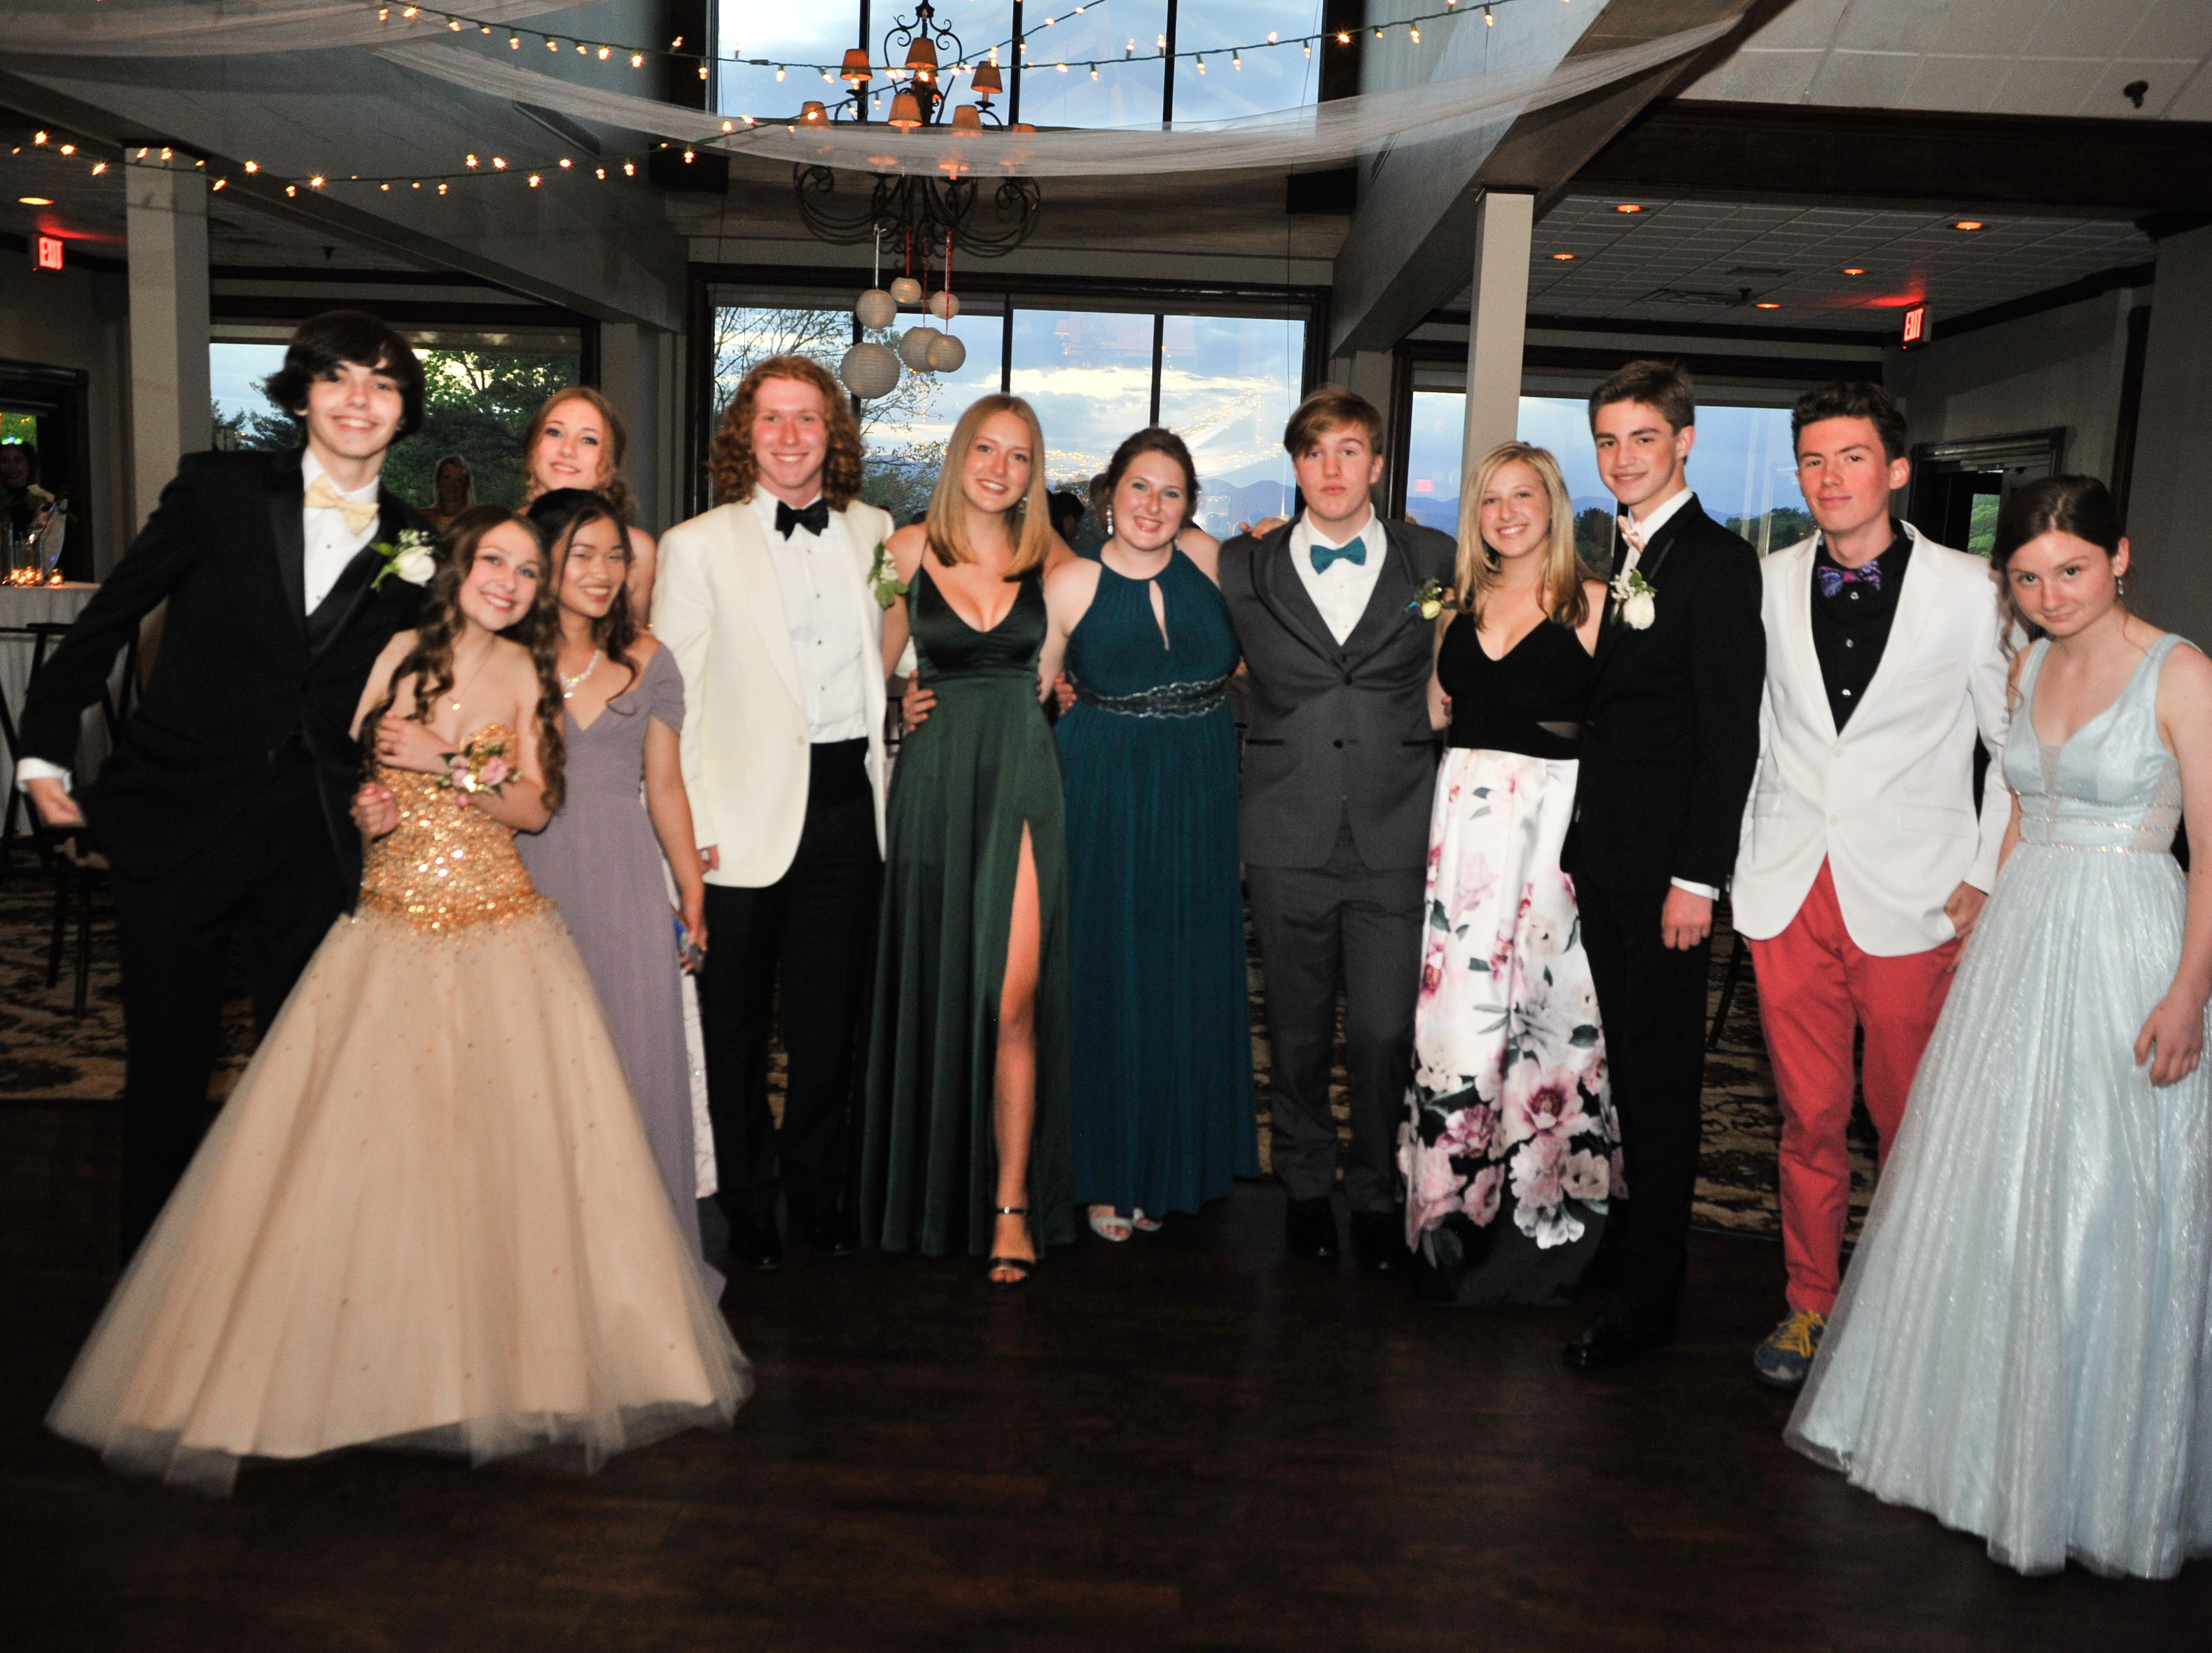 Scenes from the Carolina Day School prom, at the Country Club of Asheville, on April 27, 2019.